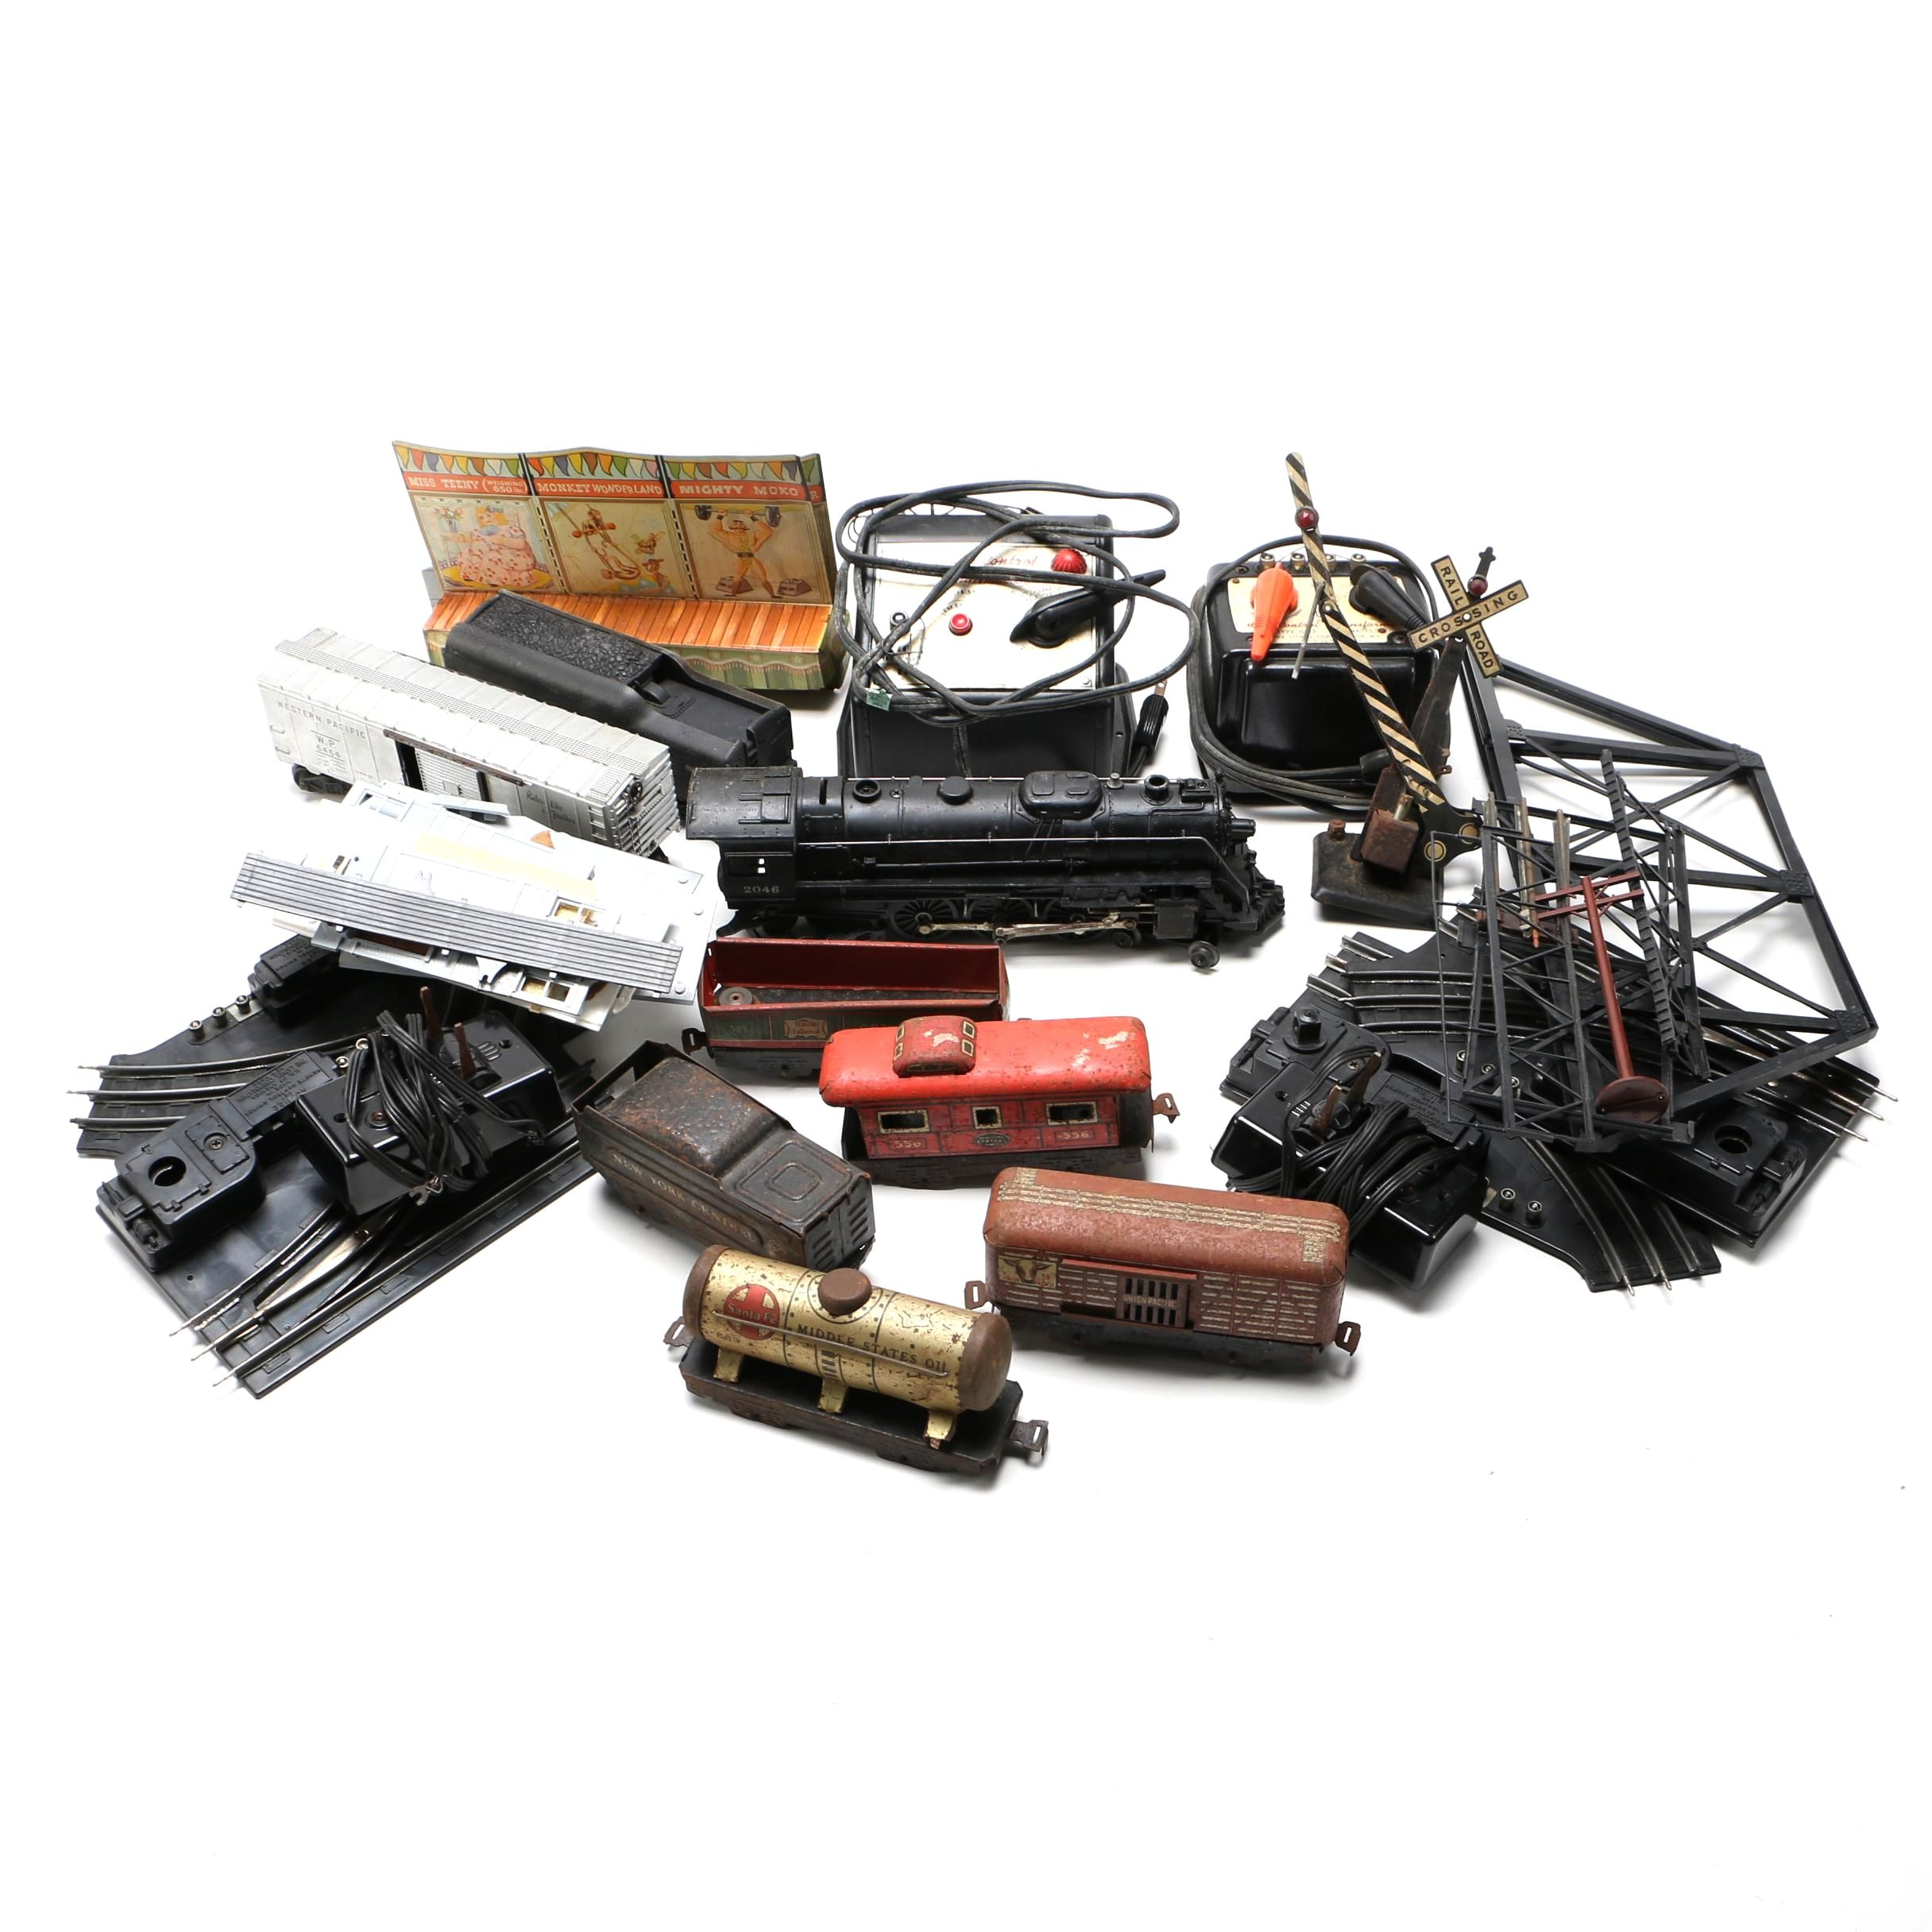 Collection of Lionel Train Cars and Accessories